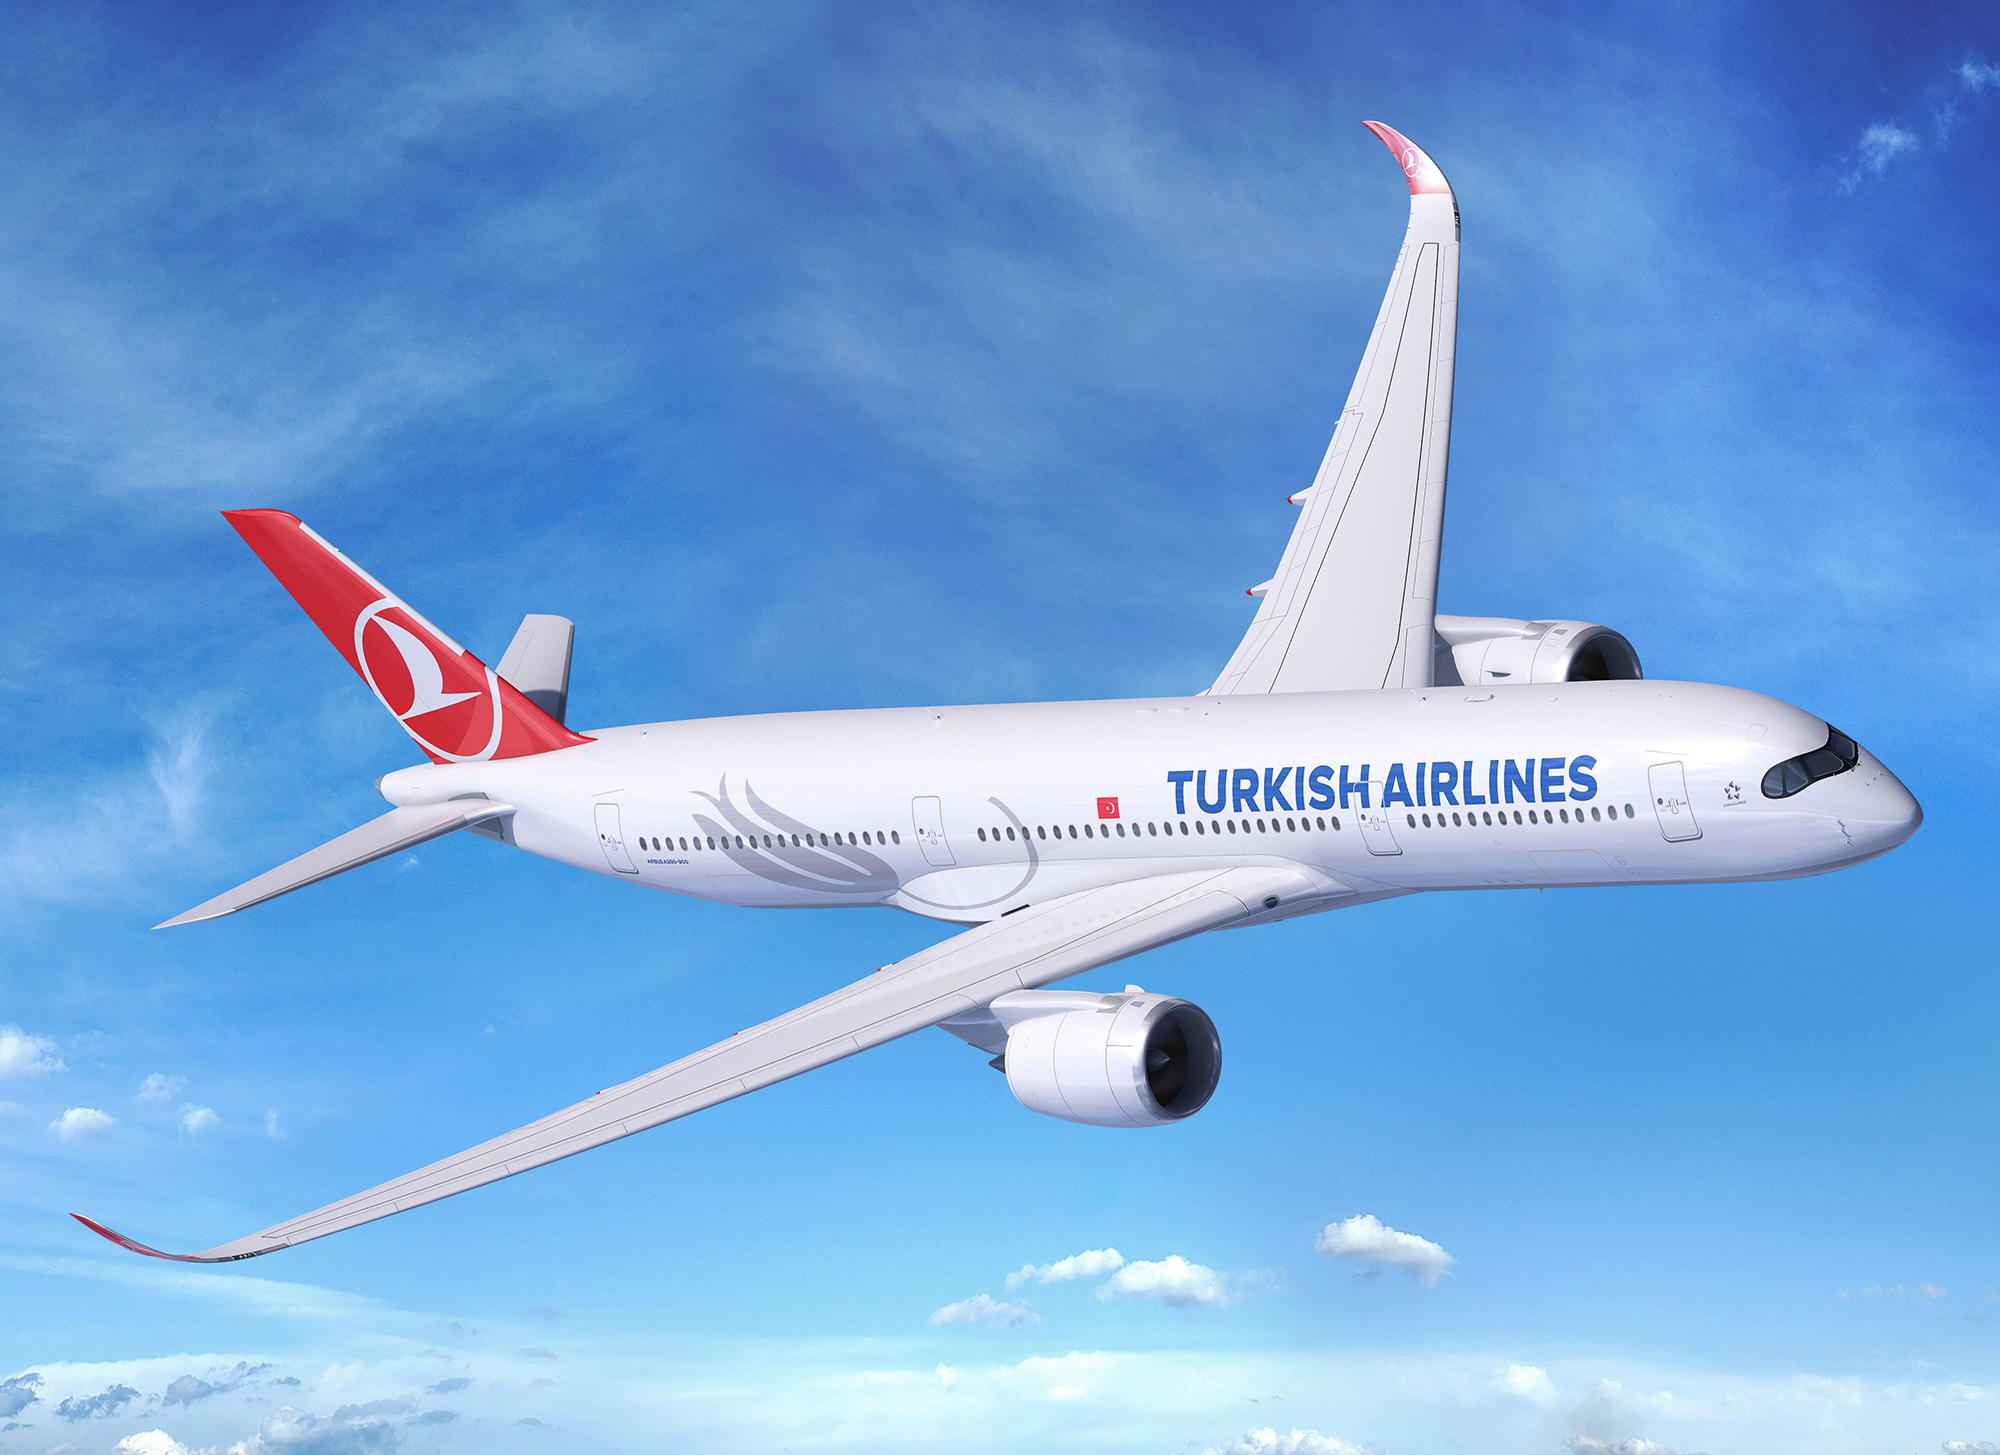 TK A350 (Airbus)